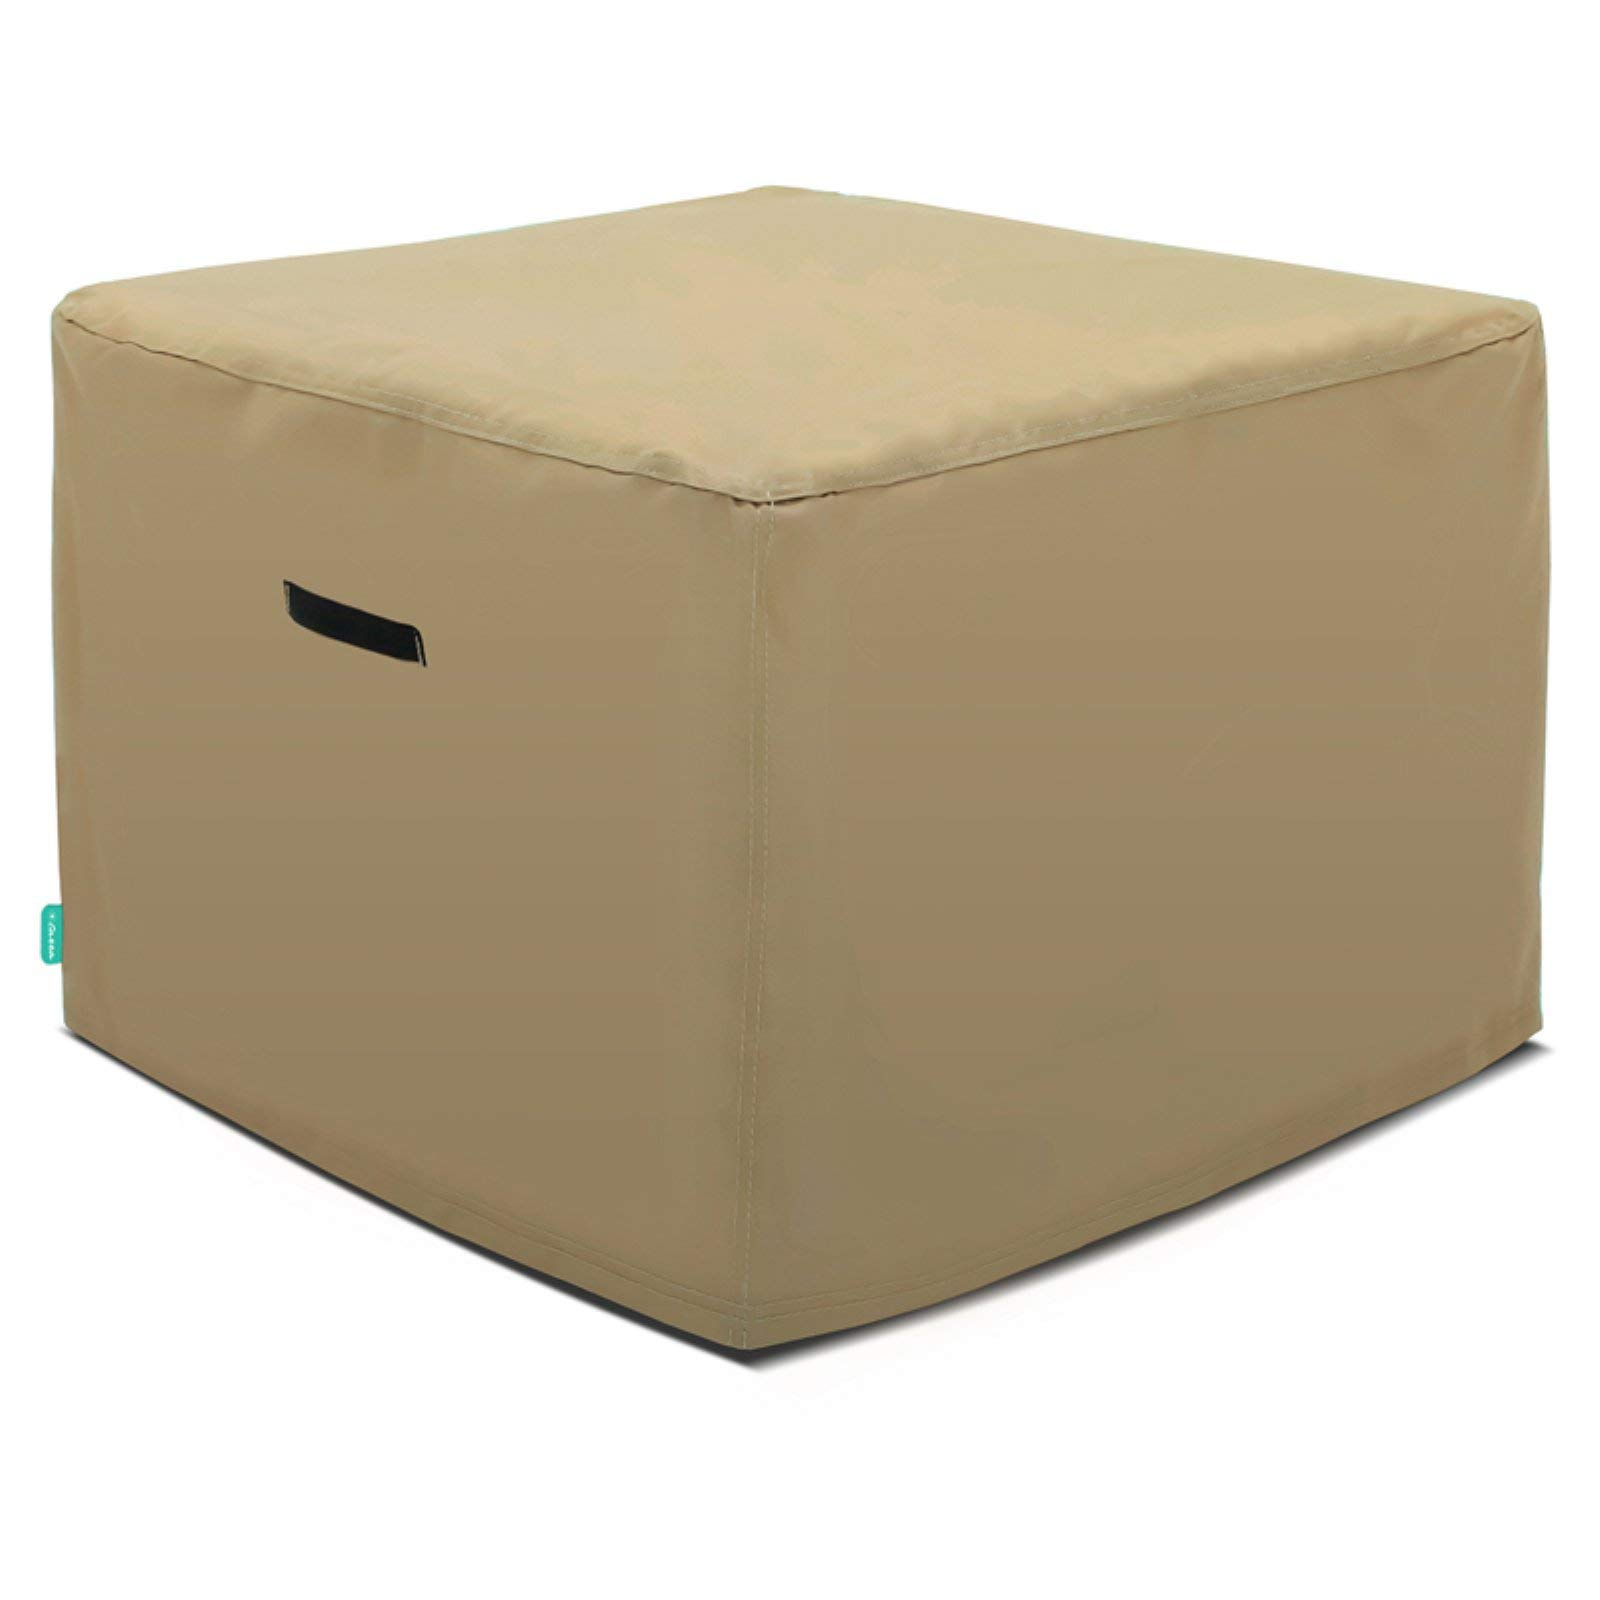 OKSLO Universal outdoor ufcoz383825pt patio square ottoman cover